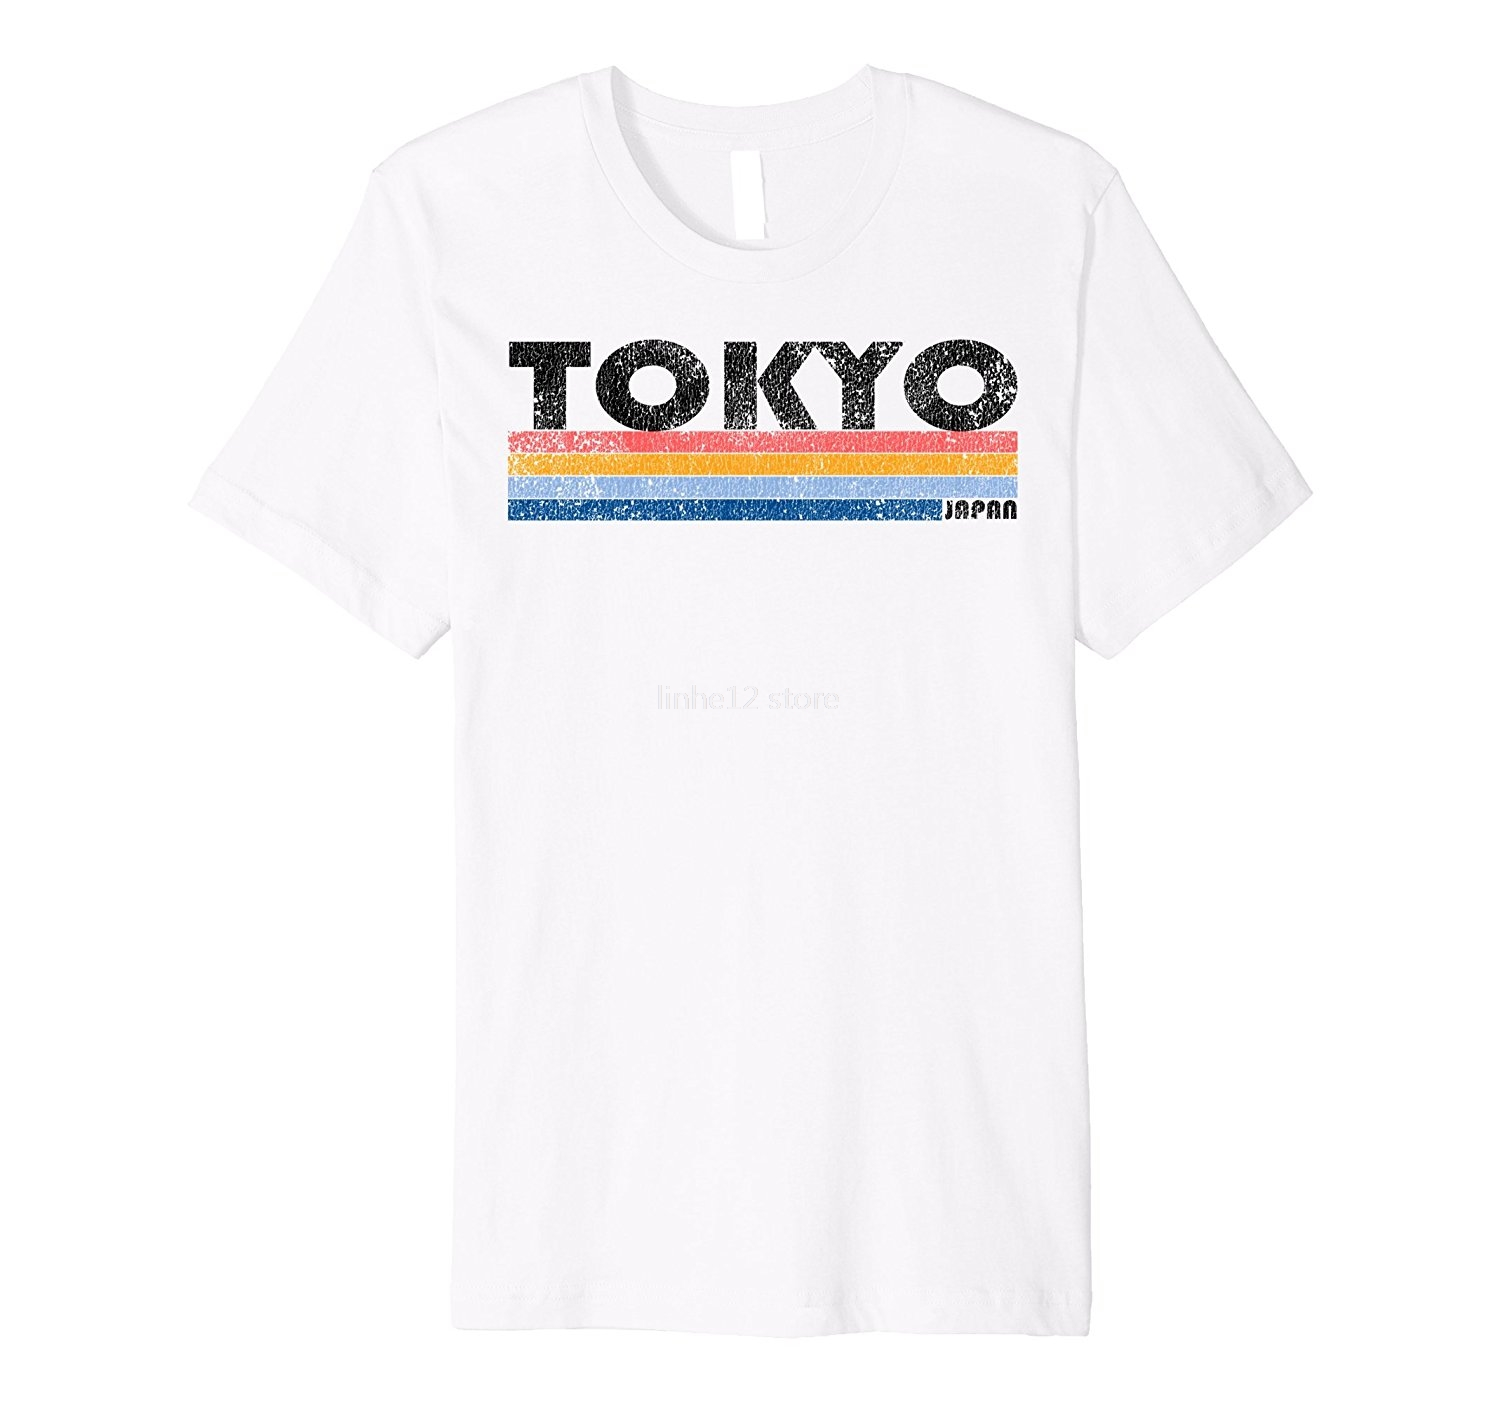 New Summer Cool Tee Shirt Premium Vintage S Style